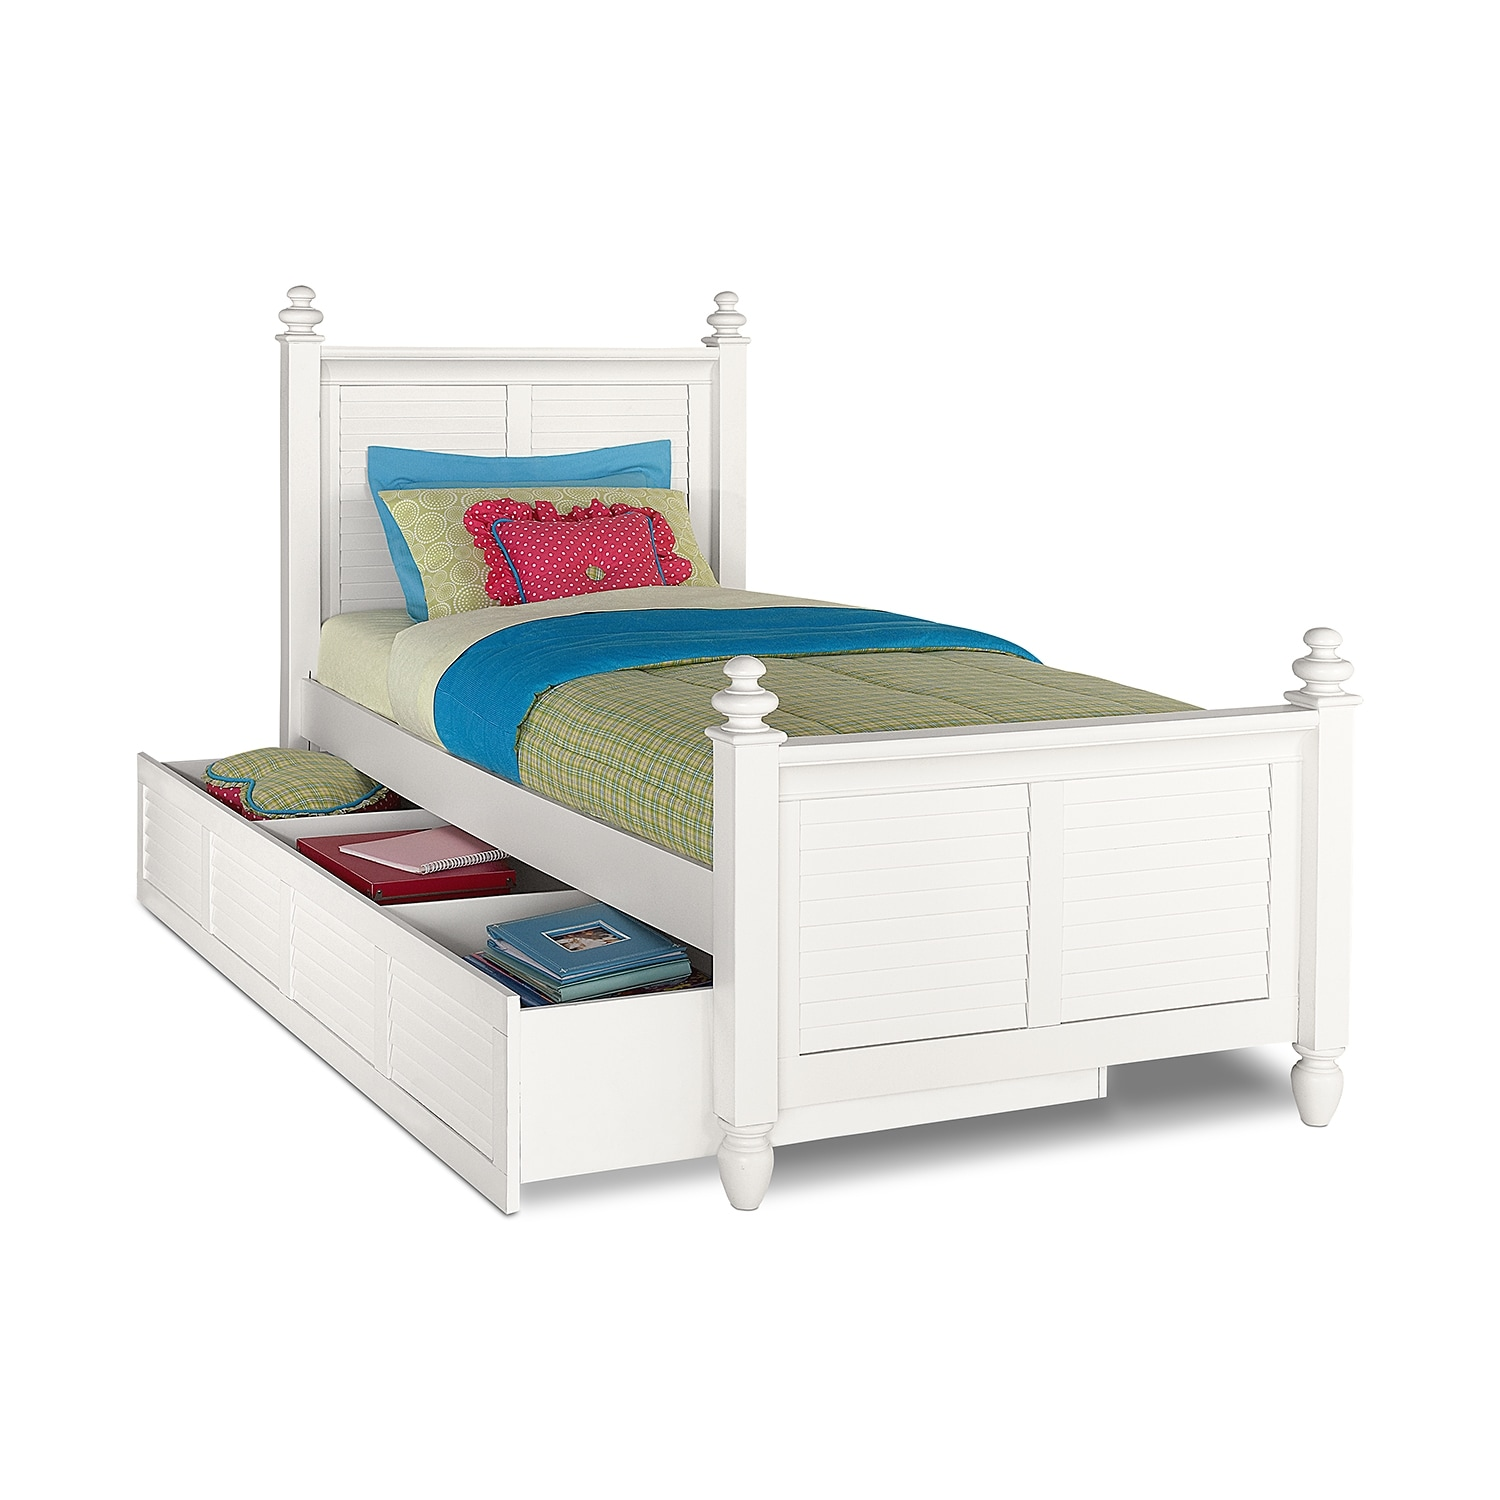 Seaside twin bed with trundle white value city furniture White twin trundle bedroom set